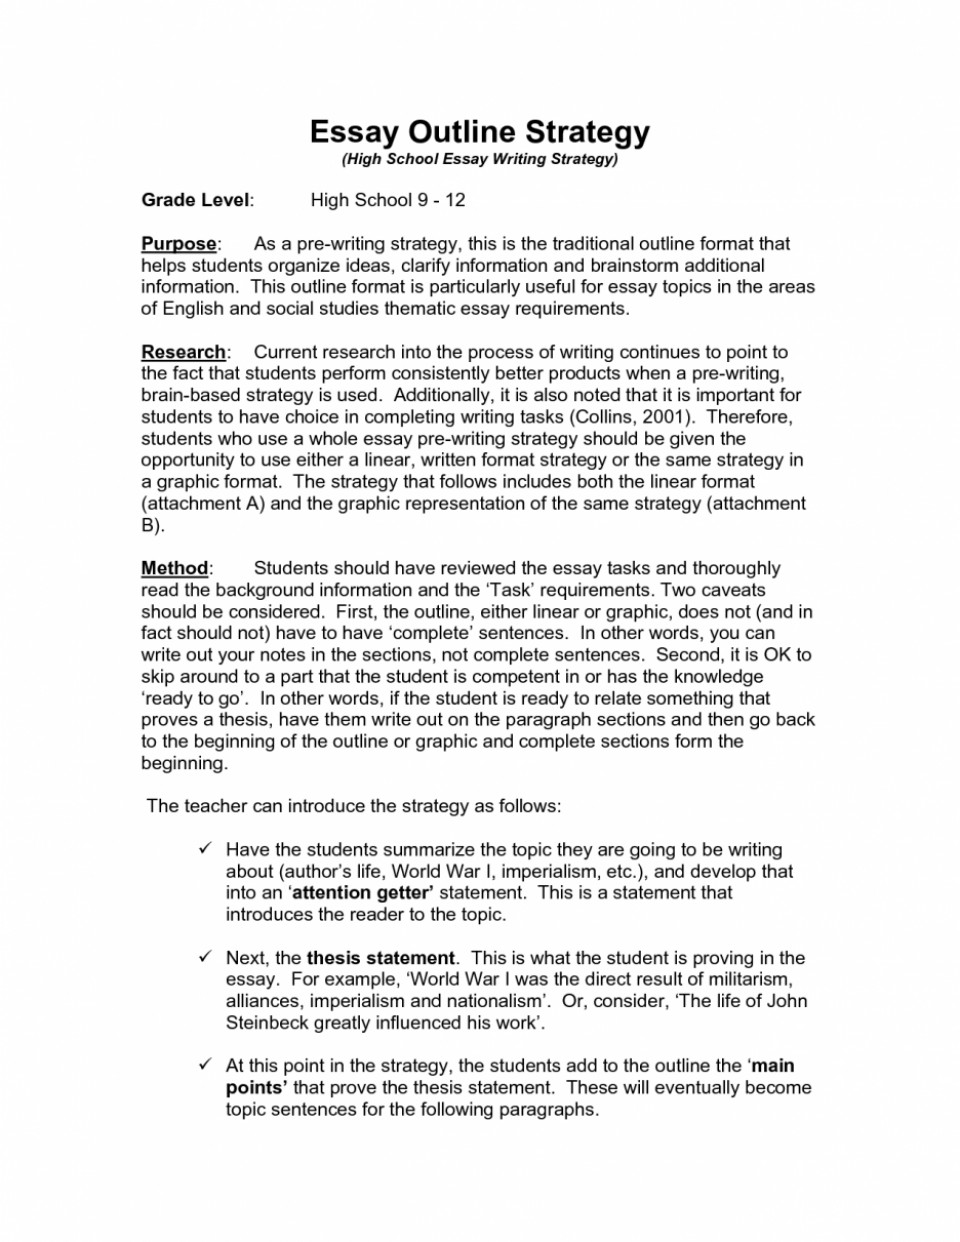 011 English Essay Outline Example Essays About Teaching As Foreign Language Class Global Learning Grammar Literature Magnificent Ap And Composition Liberty University 101 1 960